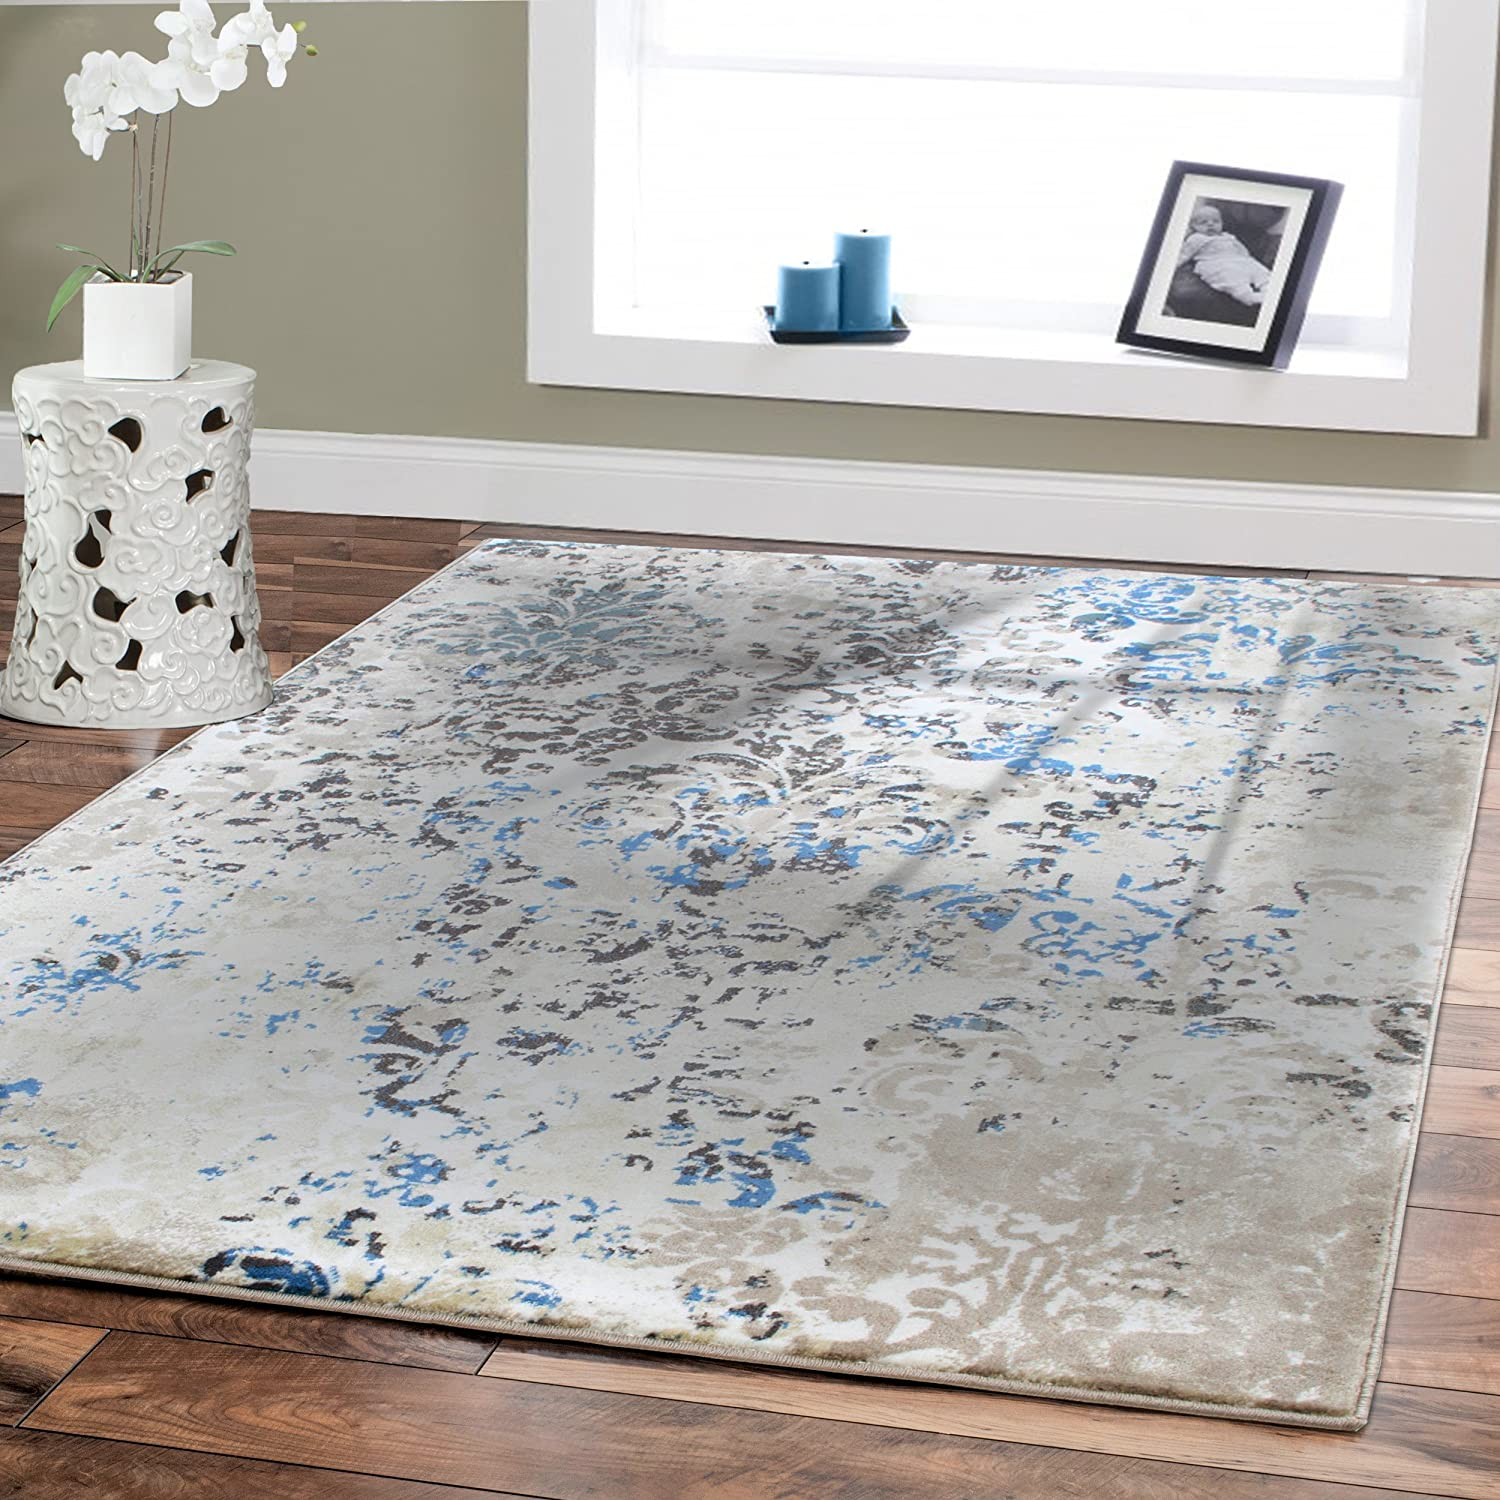 Amazon Premium Soft Contemporary Rug For Living Room Luxury 5x8 Cream Blue Brown Beige Area Rugs Modern 5x7 Bedroom Office Clearance